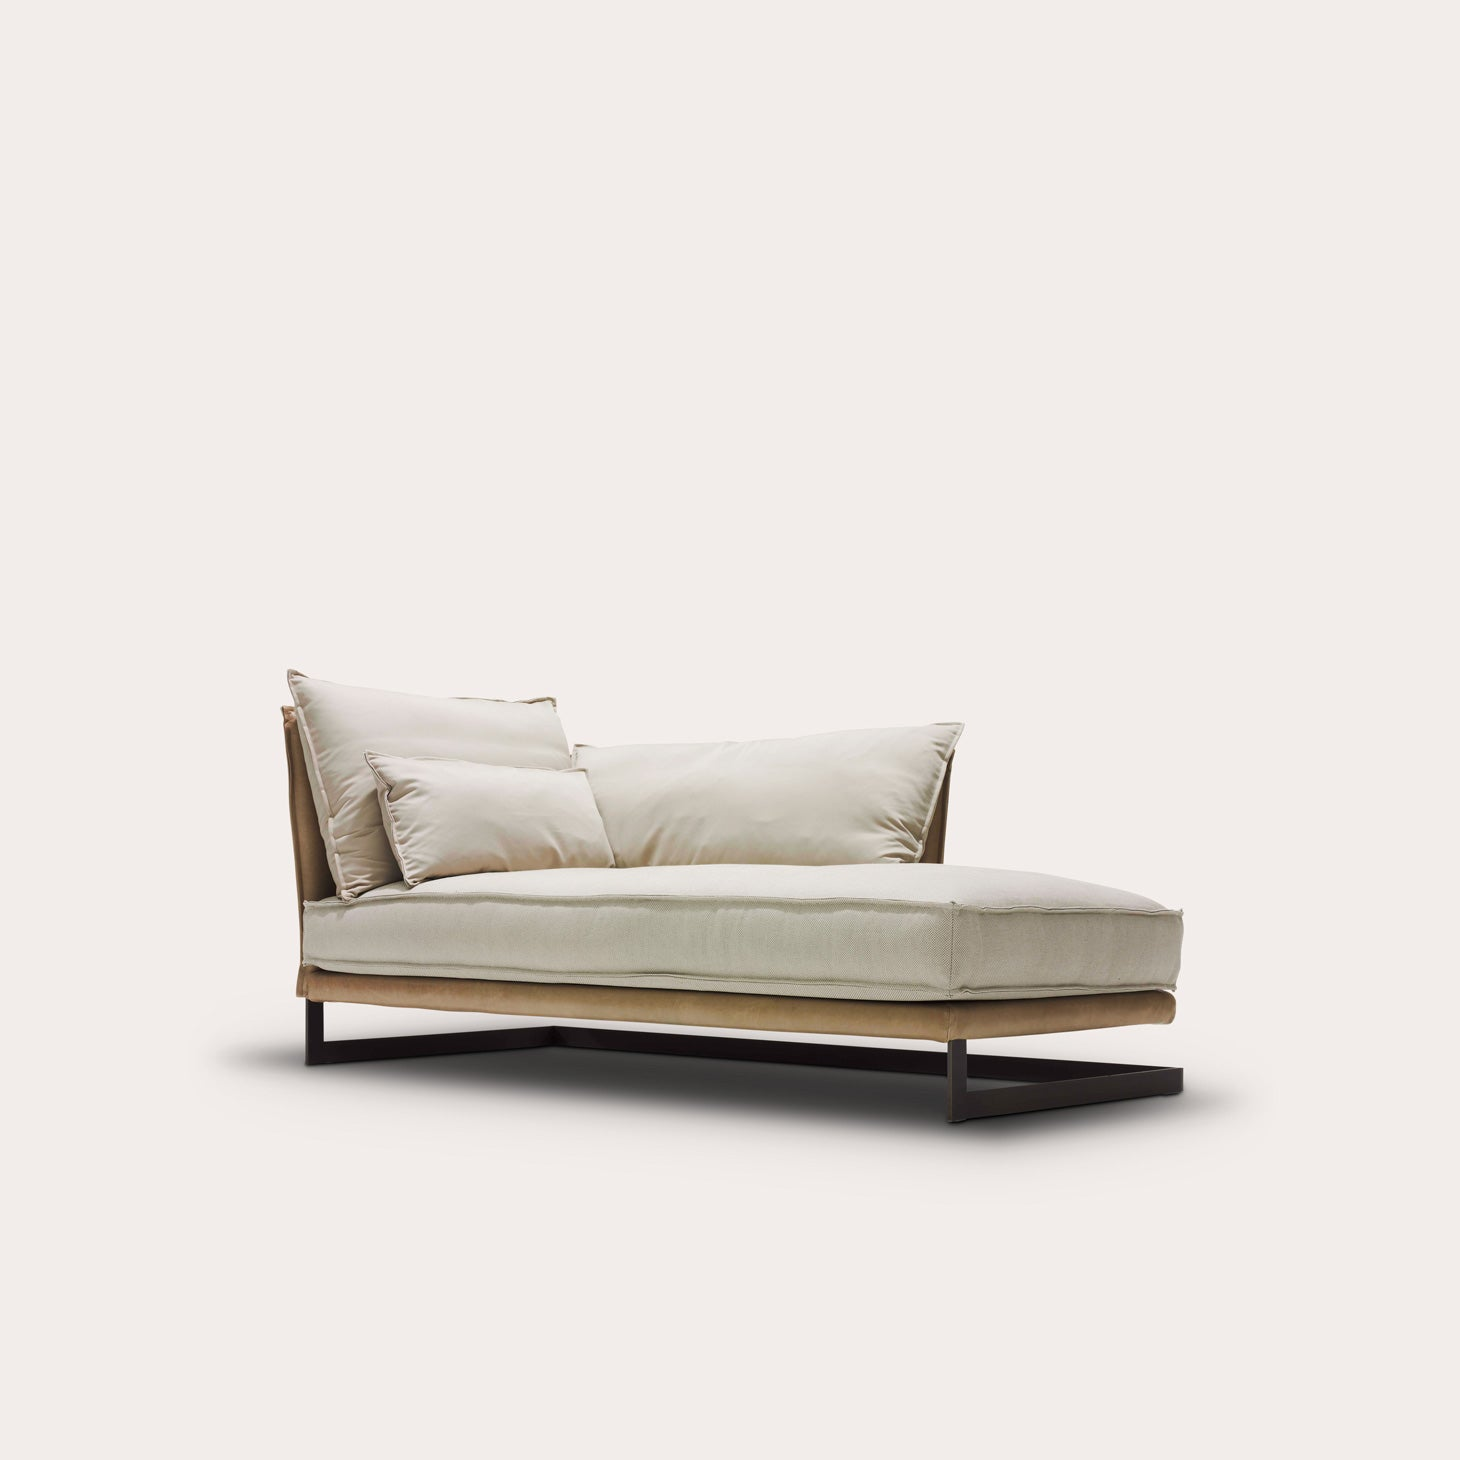 Mulberry Street Chaise Longue Seating Marcel Wolterinck Designer Furniture Sku: 247-240-10360